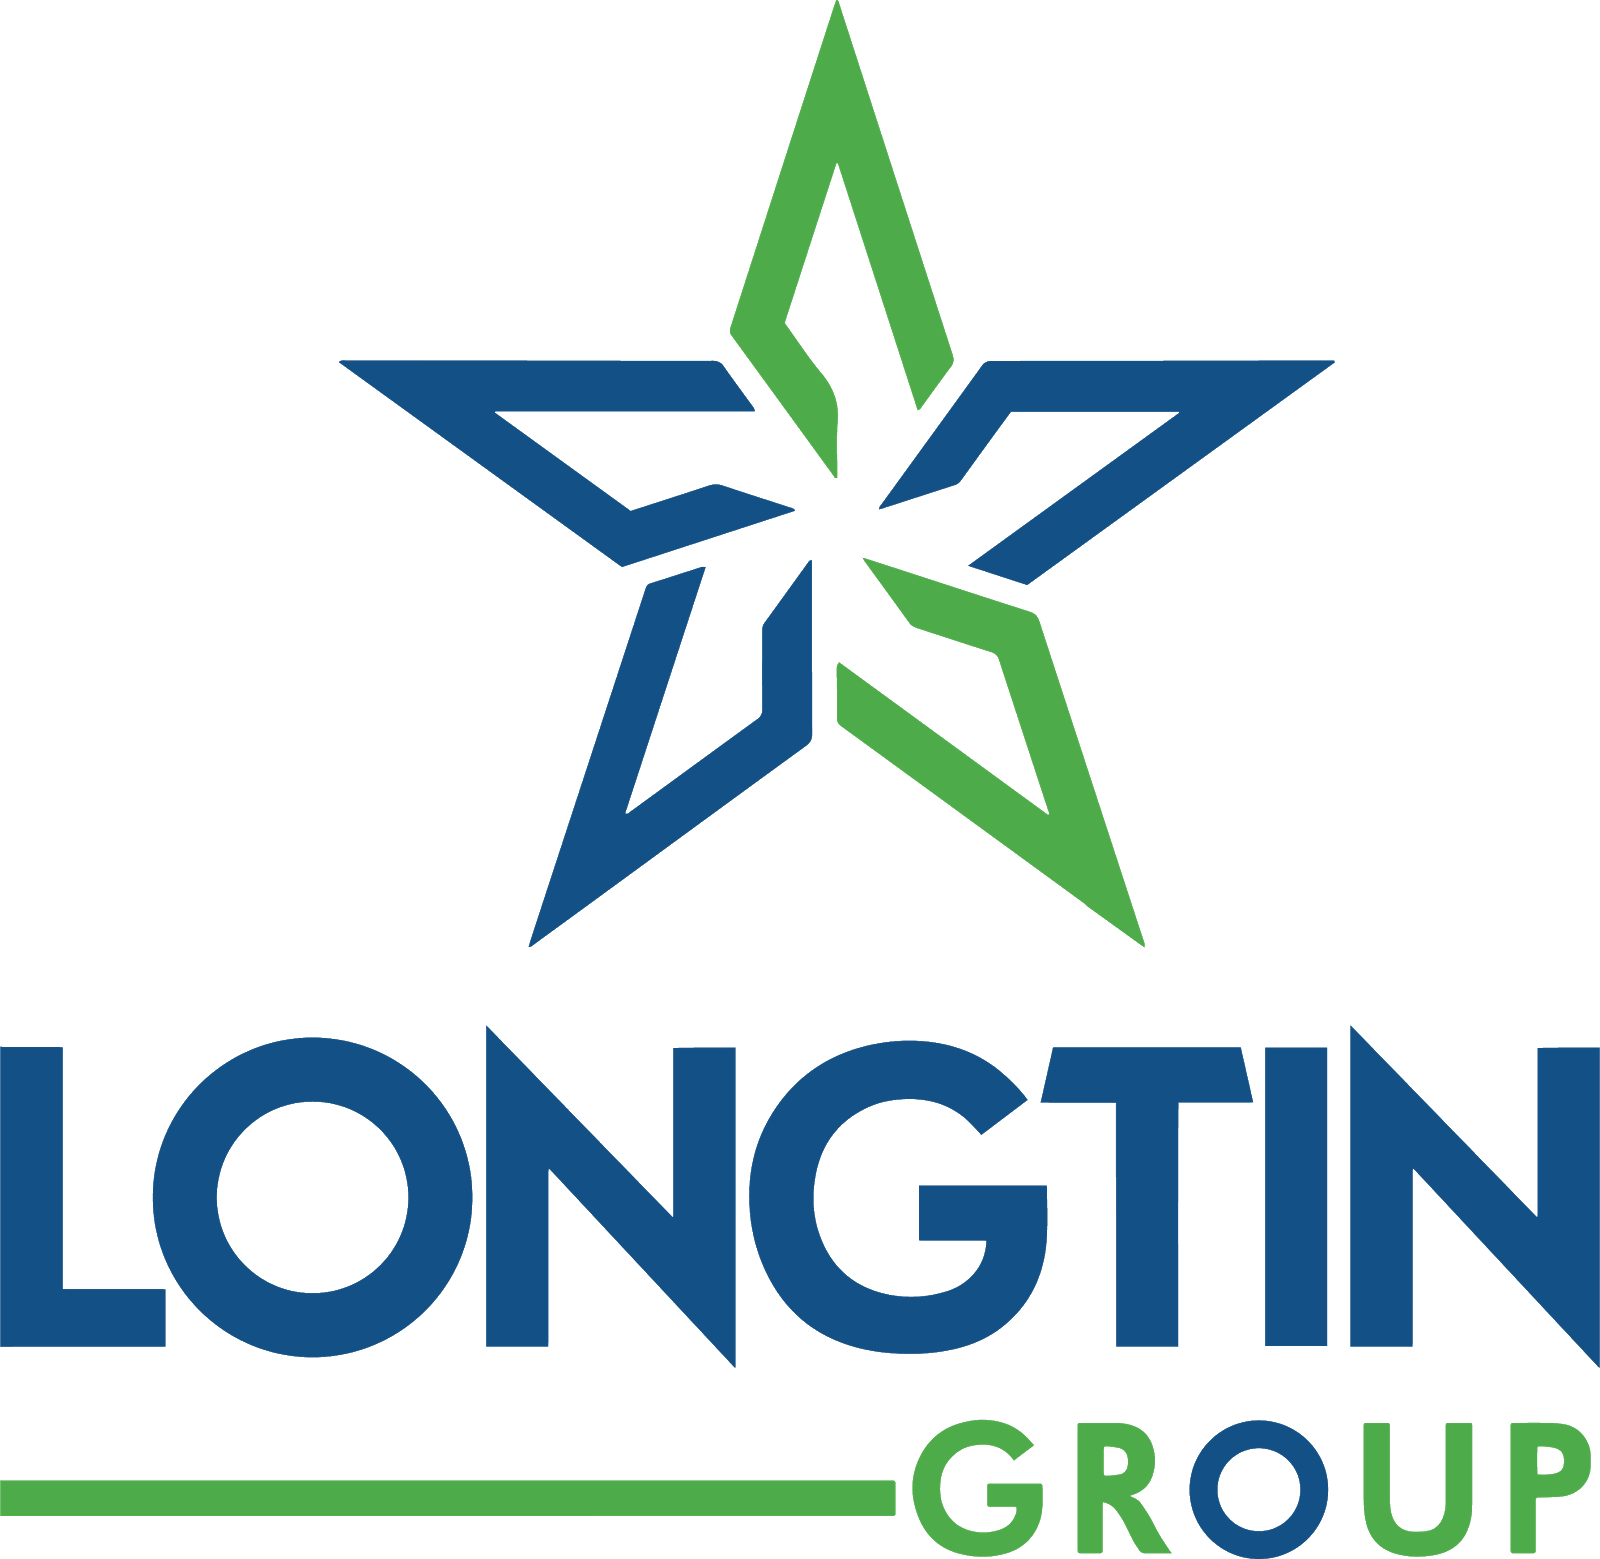 Longtin-Group-vecto